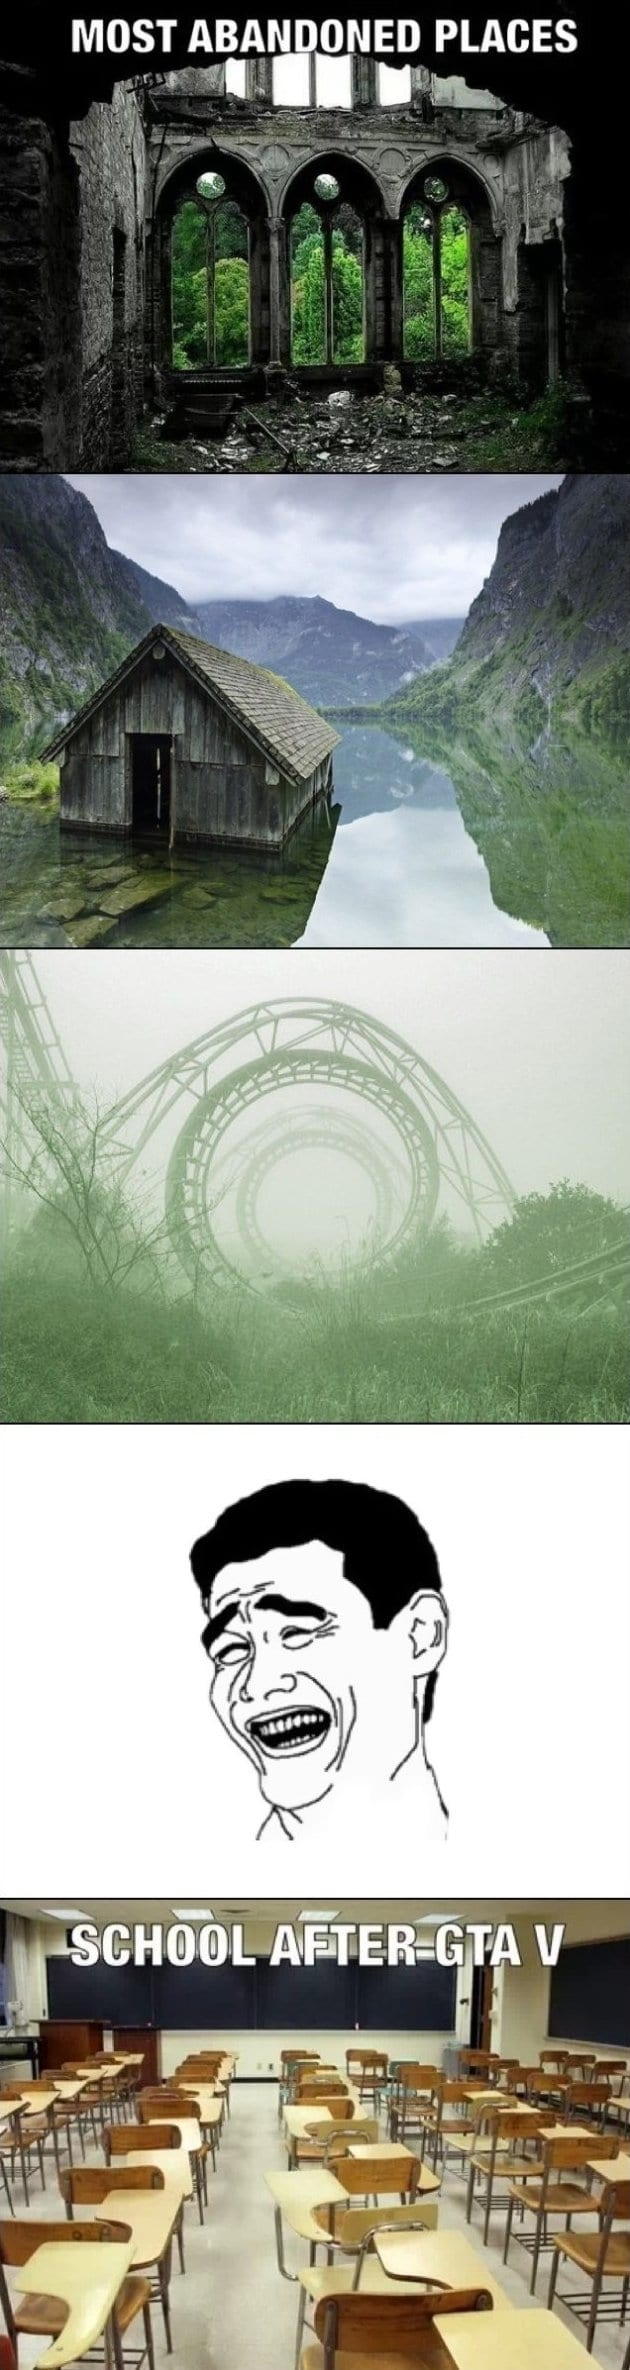 most-abandoned-places-on-earth